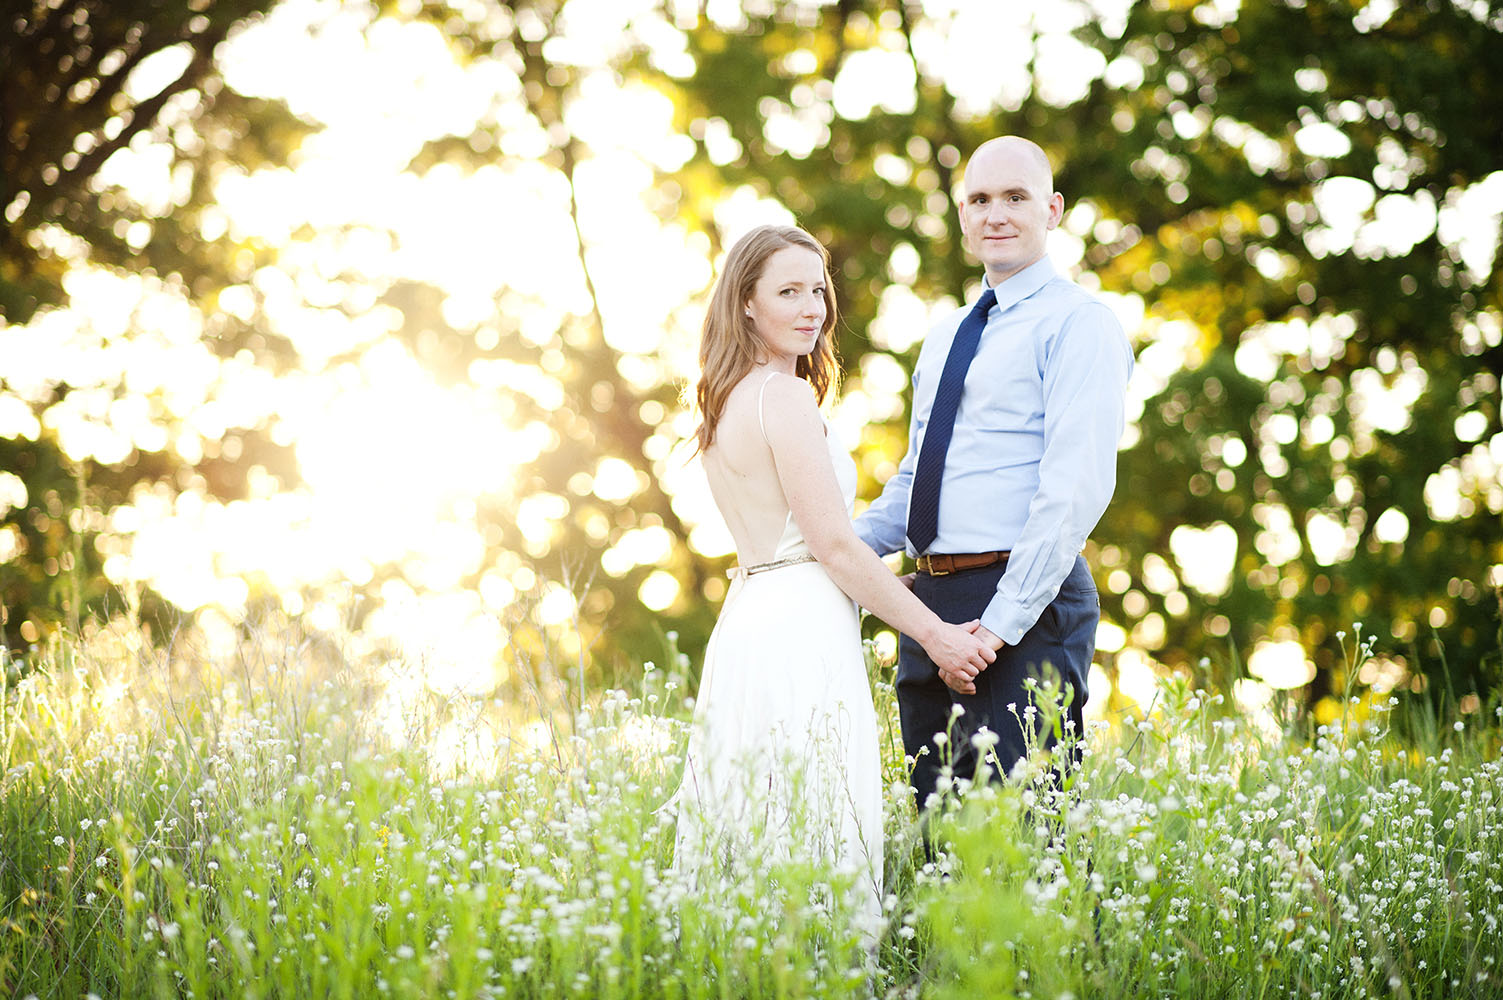 married couple in a field at sunset